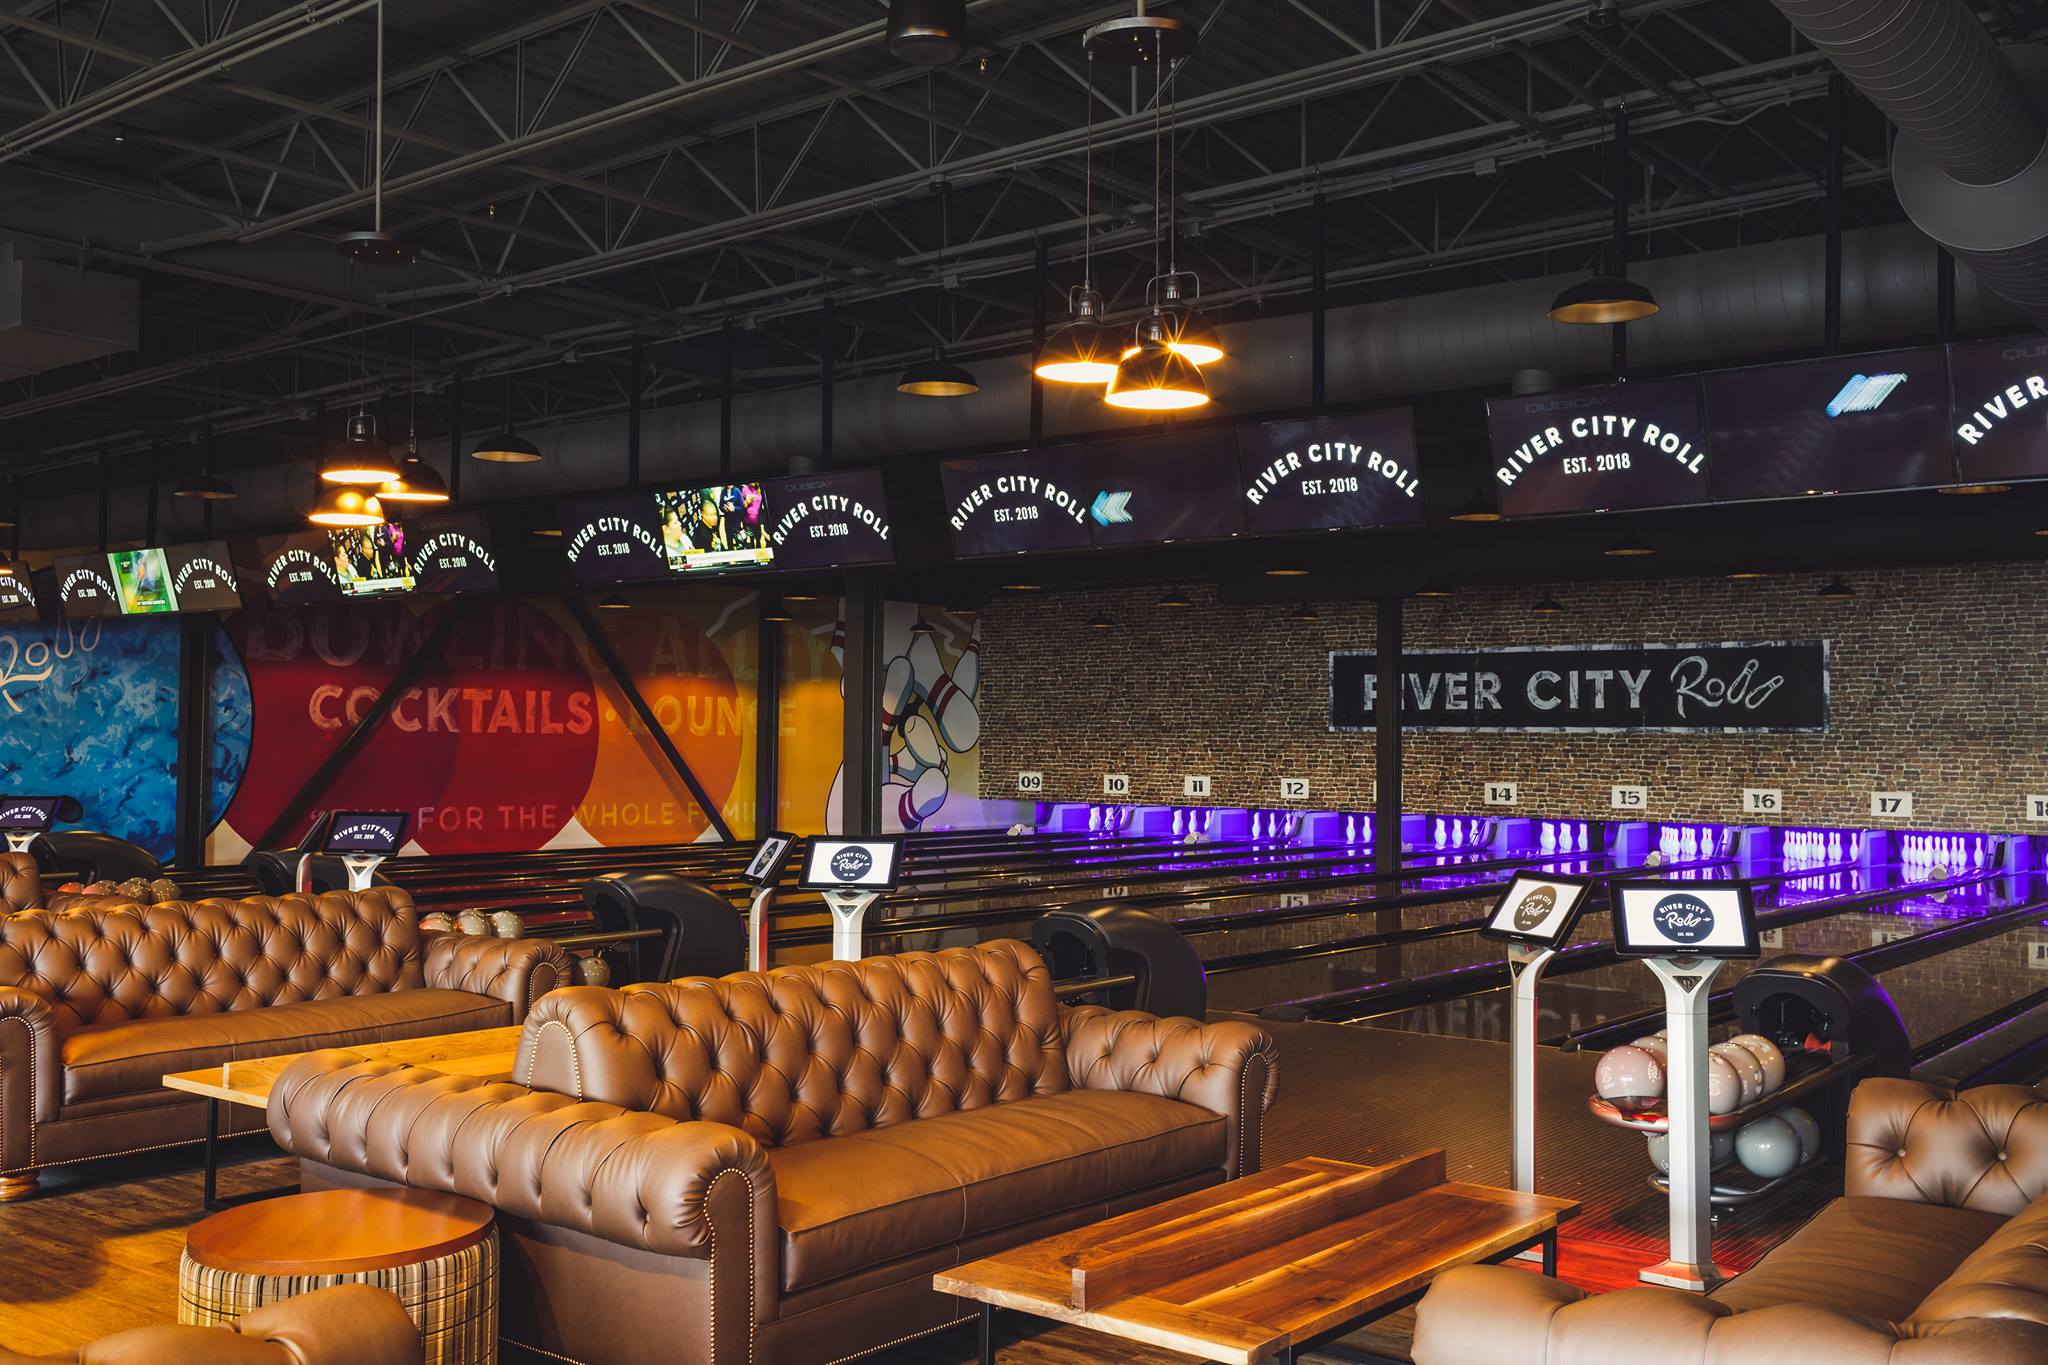 RICHMOND'S BOUTIQUE BOWLING ALLEY & ENTERTAINMENT VENUE - River City Roll is Richmond, Virginia's premier boutique bowling alley, with 20 lanes for bowling, complimentary tabletop shuffle board, skee-ball, featuring live music every Thursday, Friday and Saturday.